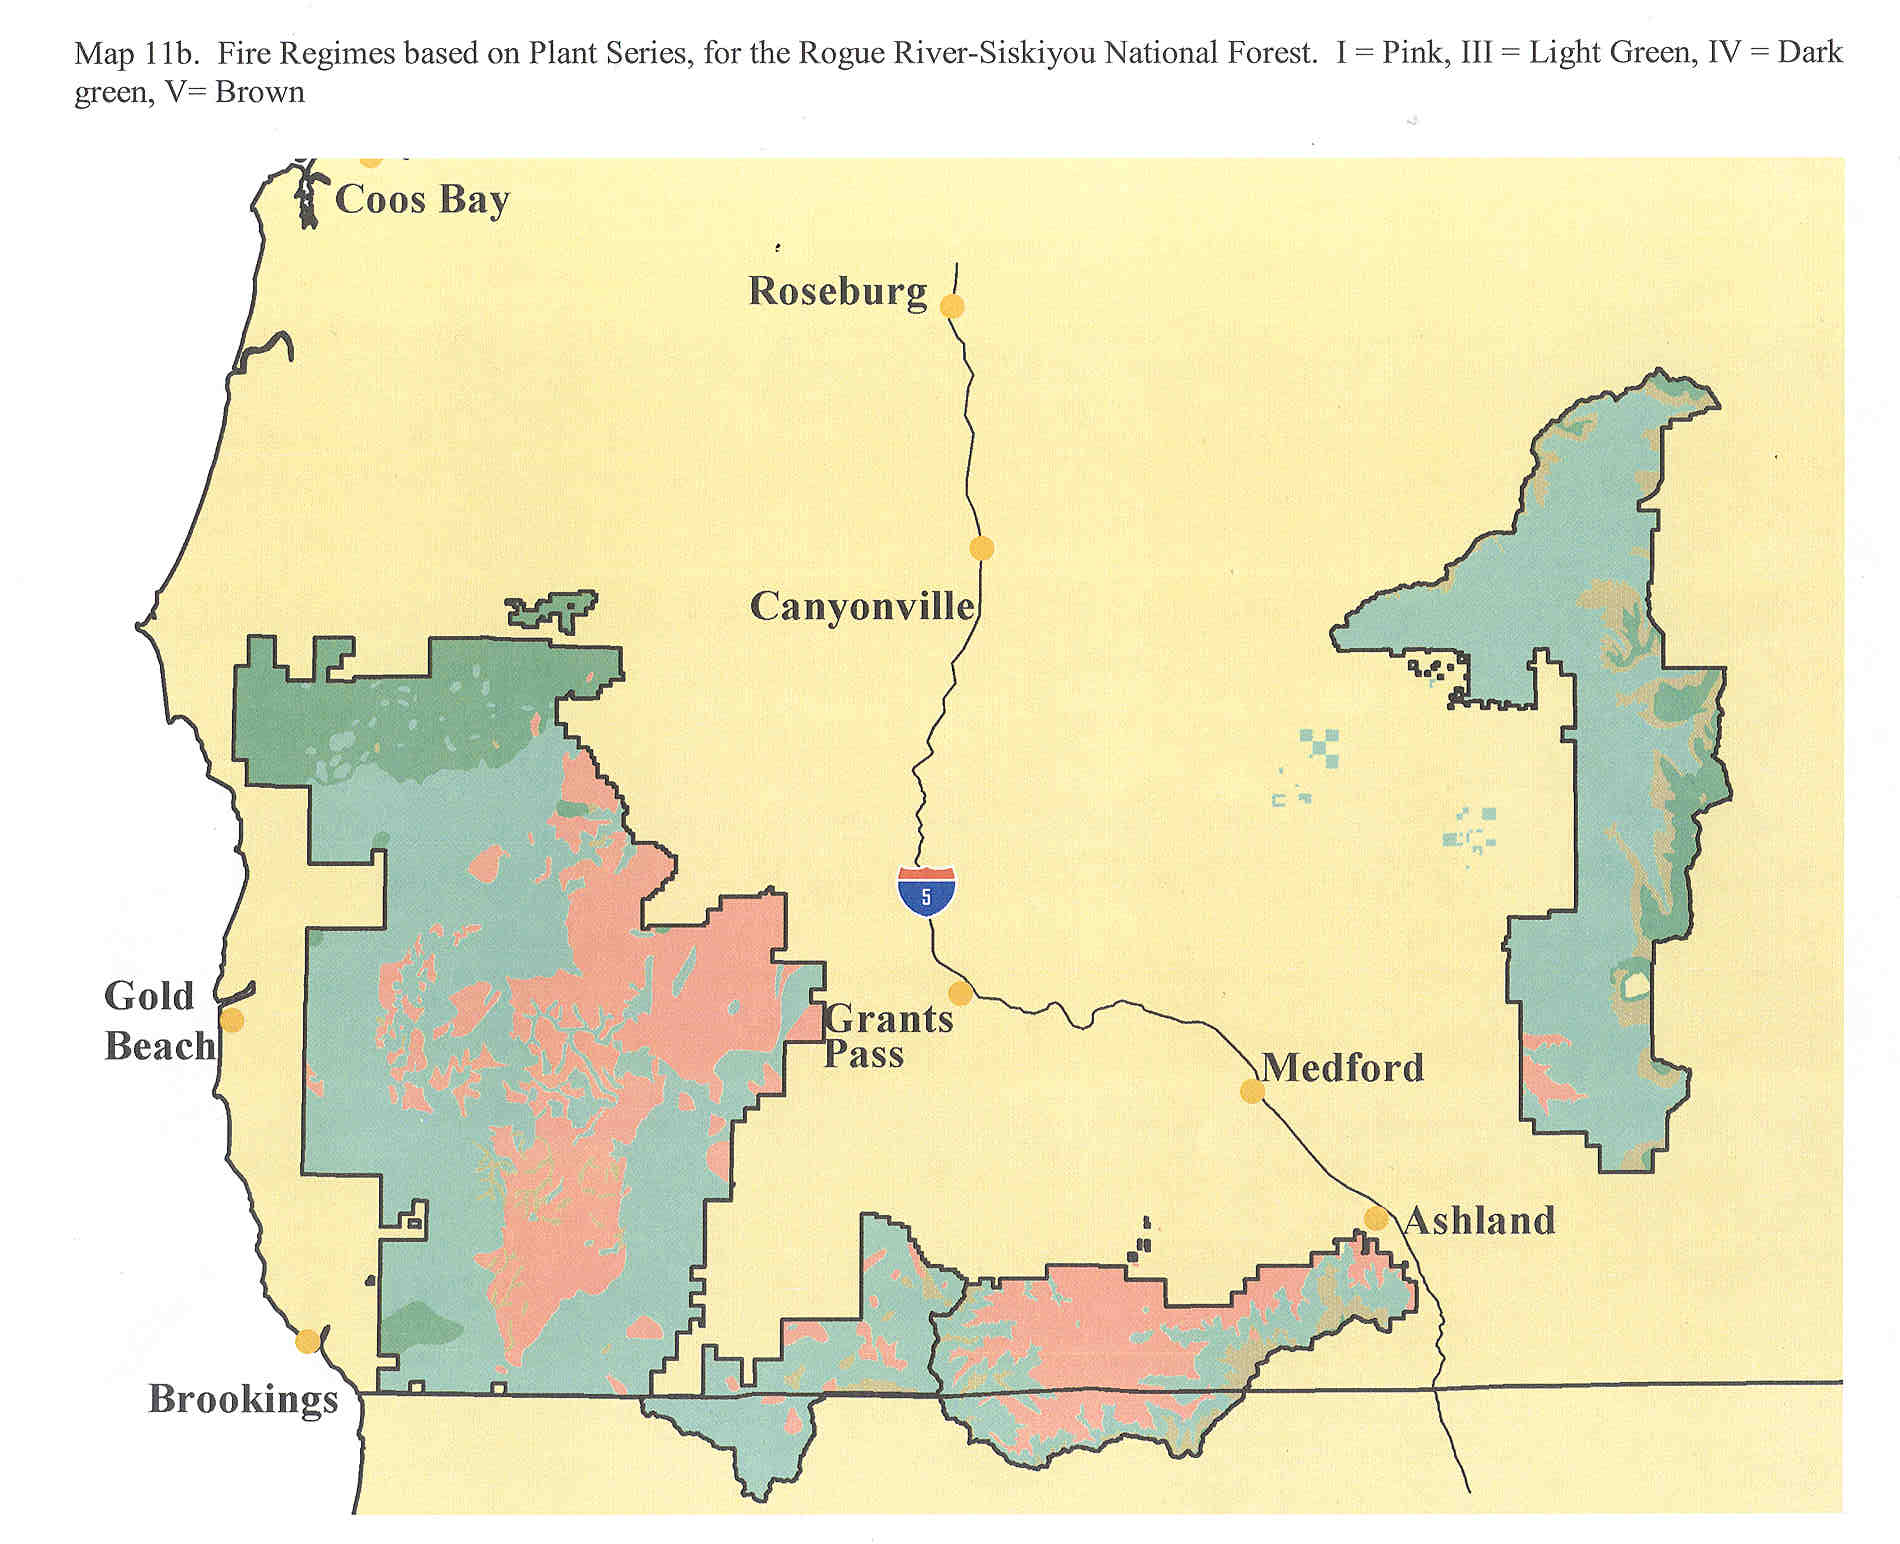 Rogue RiverSiskiyou National Forest Maps Publications